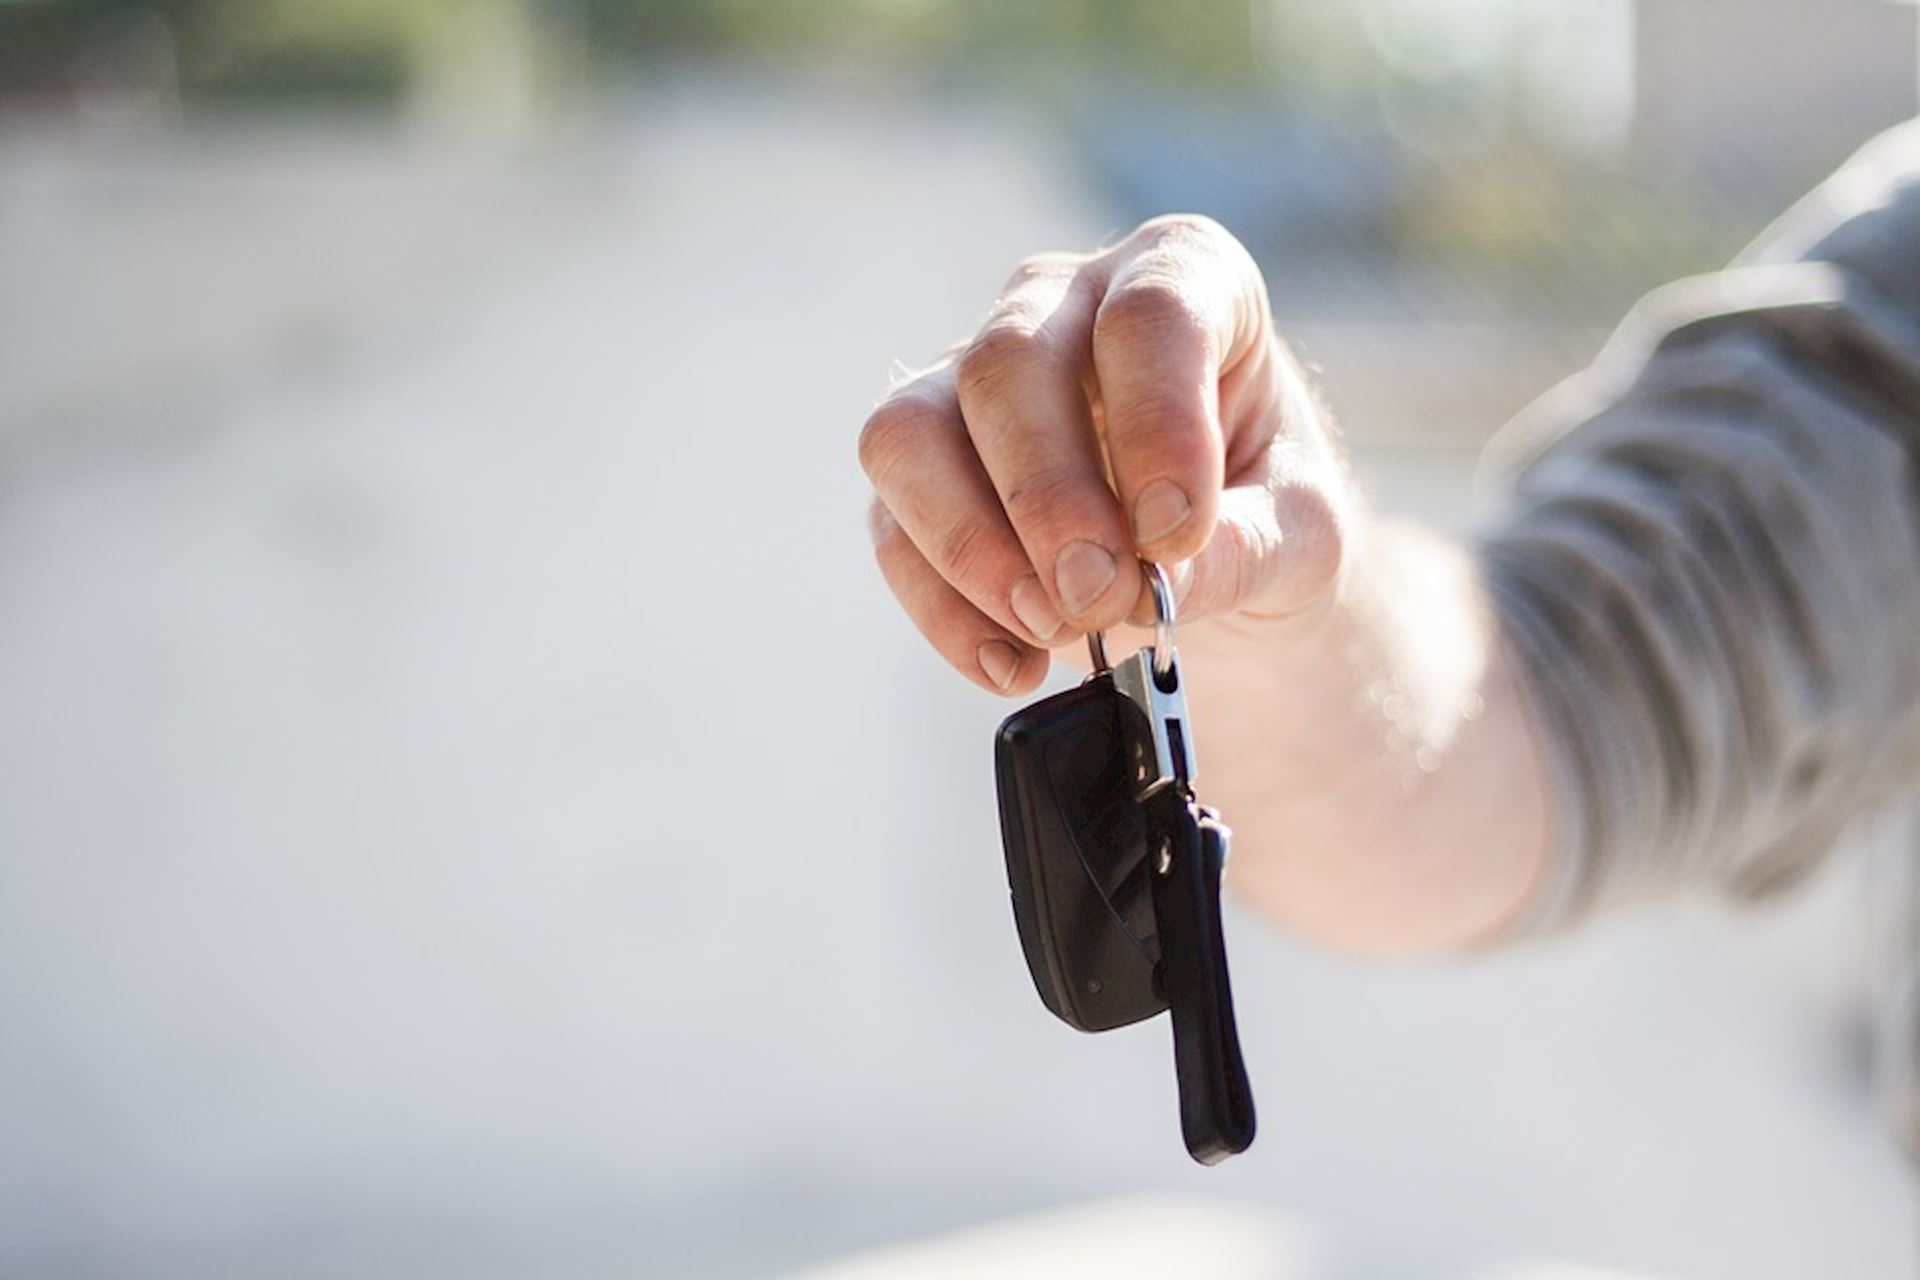 Tips for Finding the New Car You Want